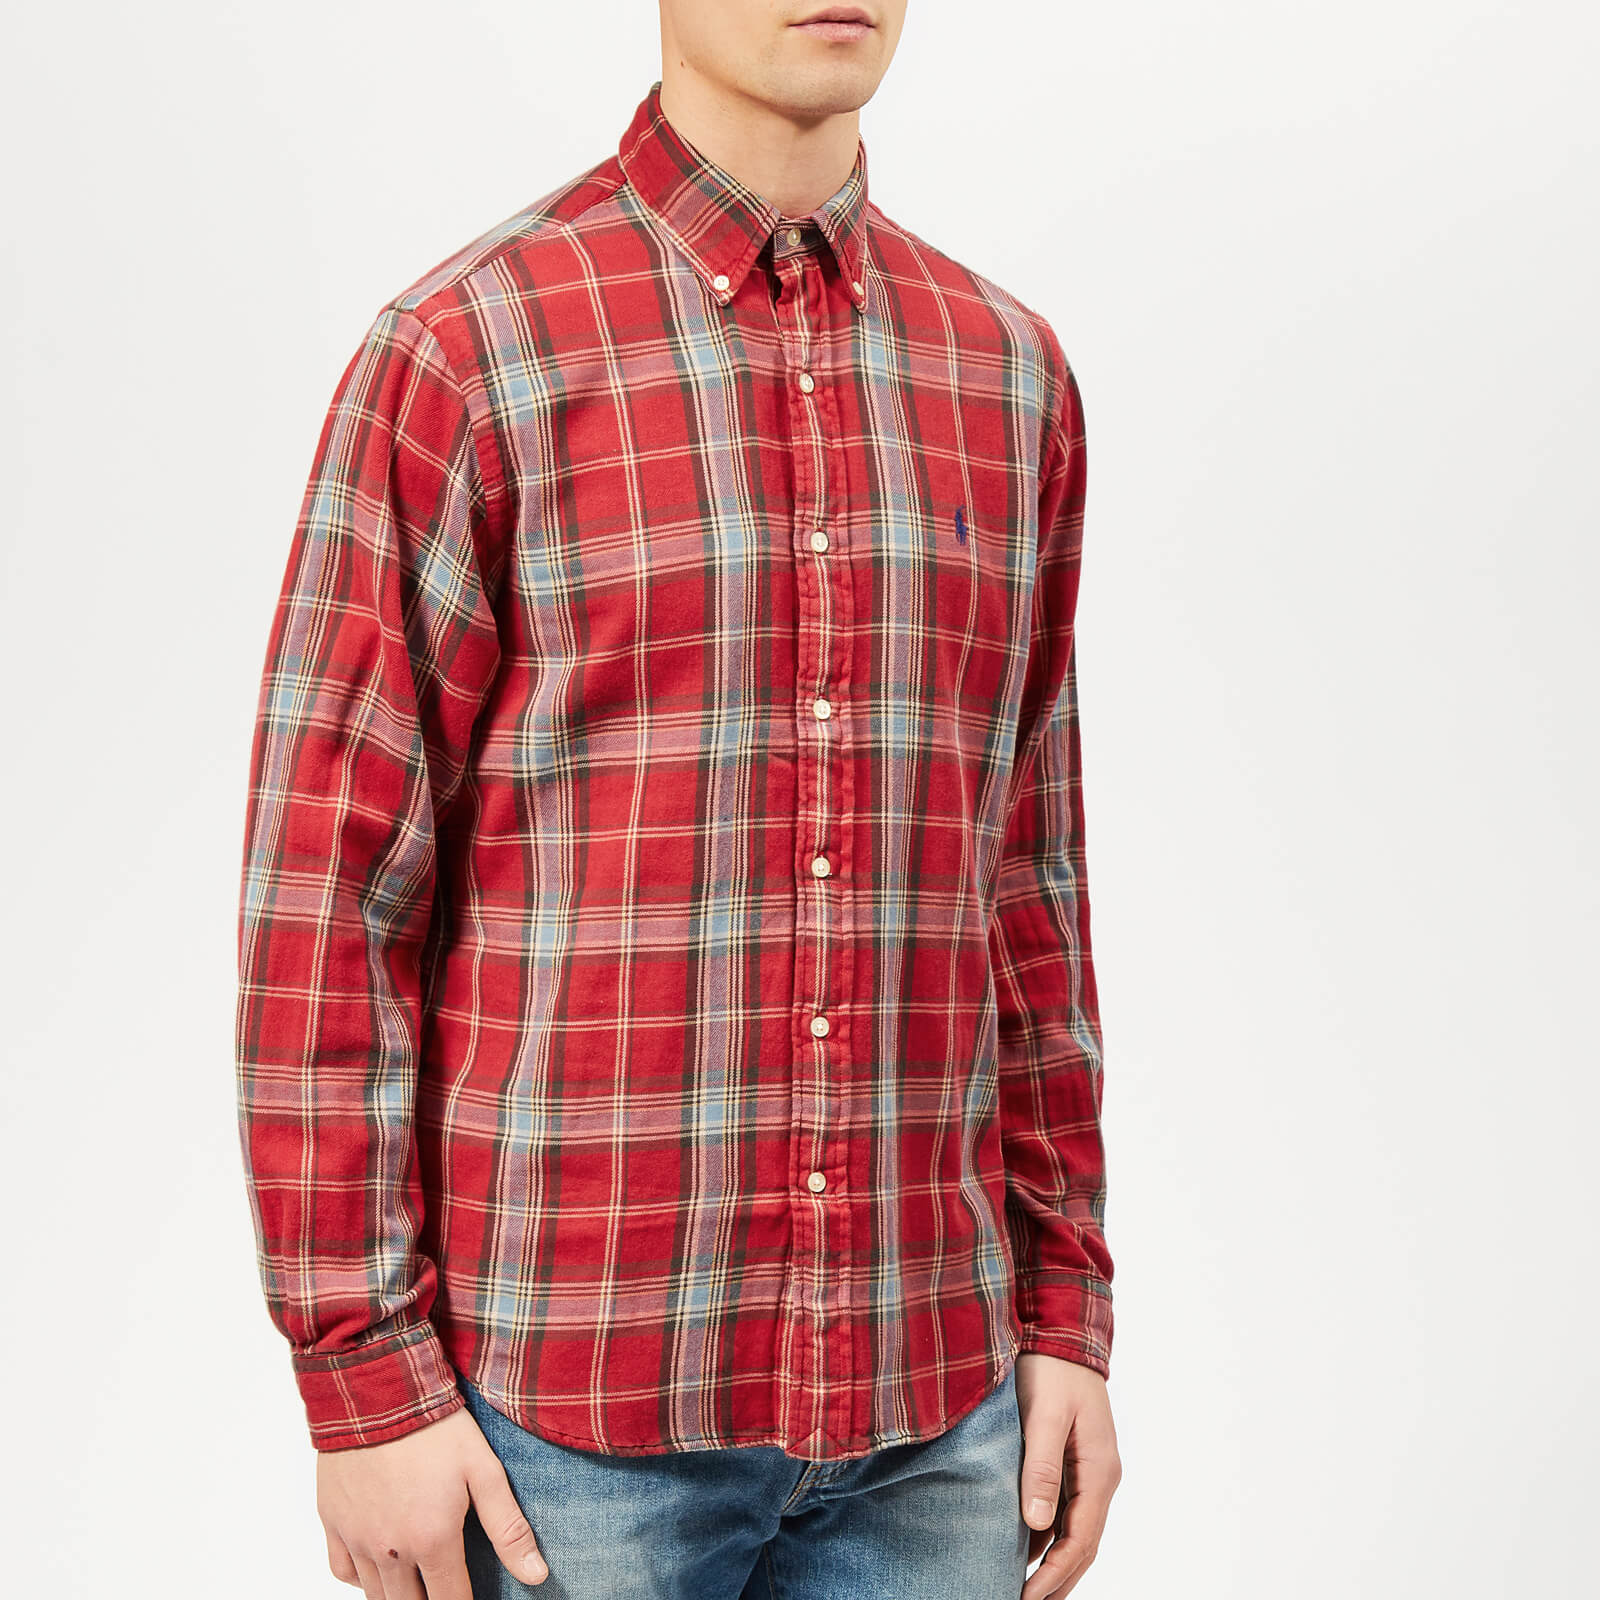 Redblue Polo Men's Checked Flannel Lauren Ralph Cotton Shirt CdBxroe